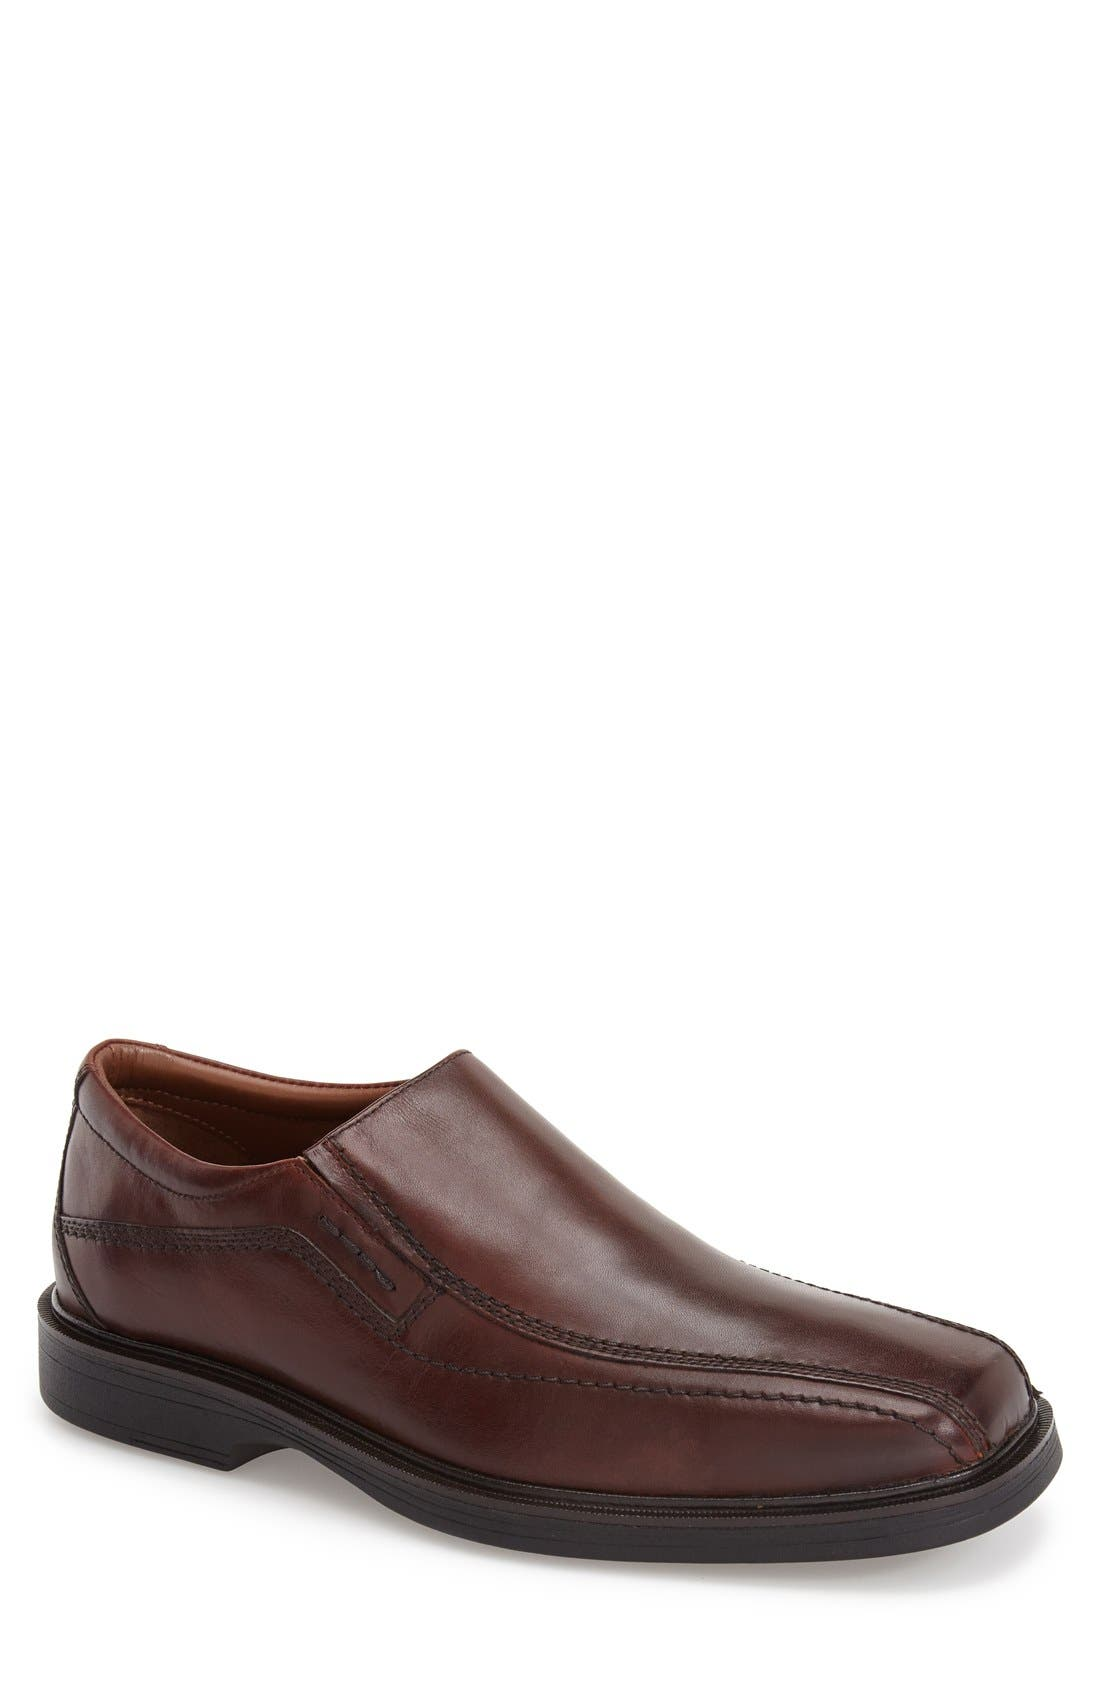 Alternate Image 1 Selected - Johnston & Murphy 'Penn' Venetian Loafer (Men)